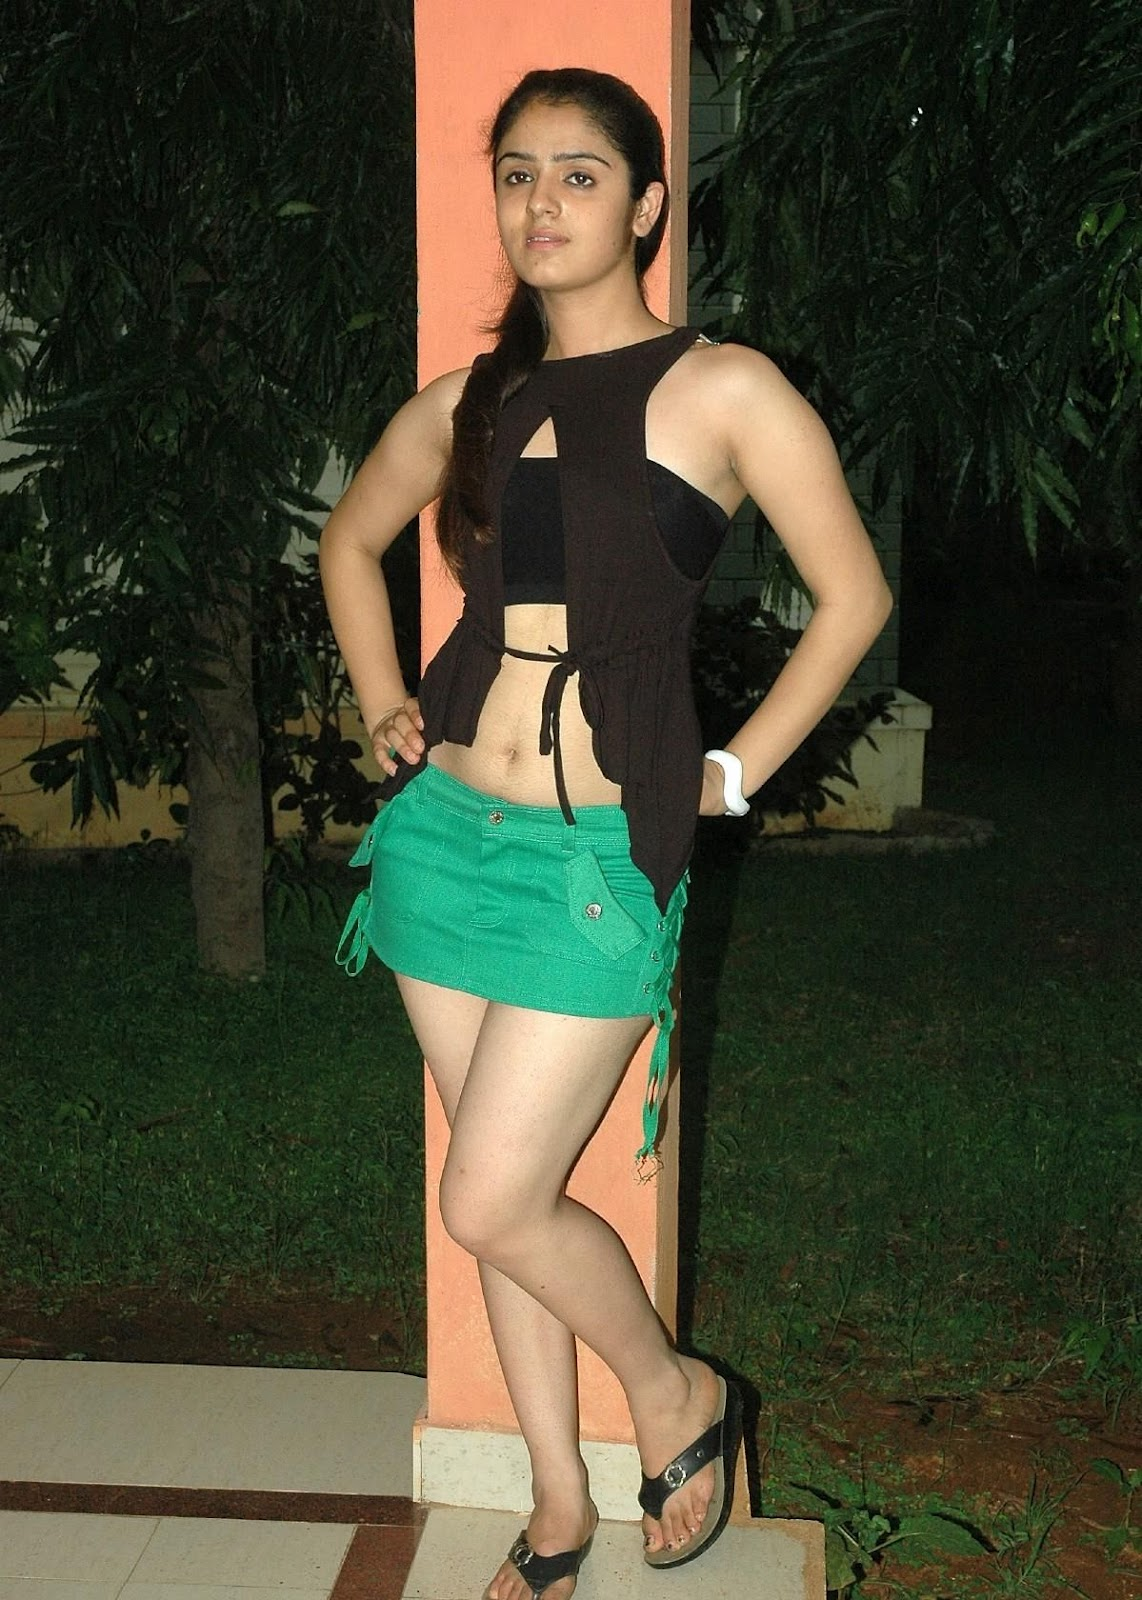 High Quality Bollywood Celebrity Pictures Shefali Sharma -9885